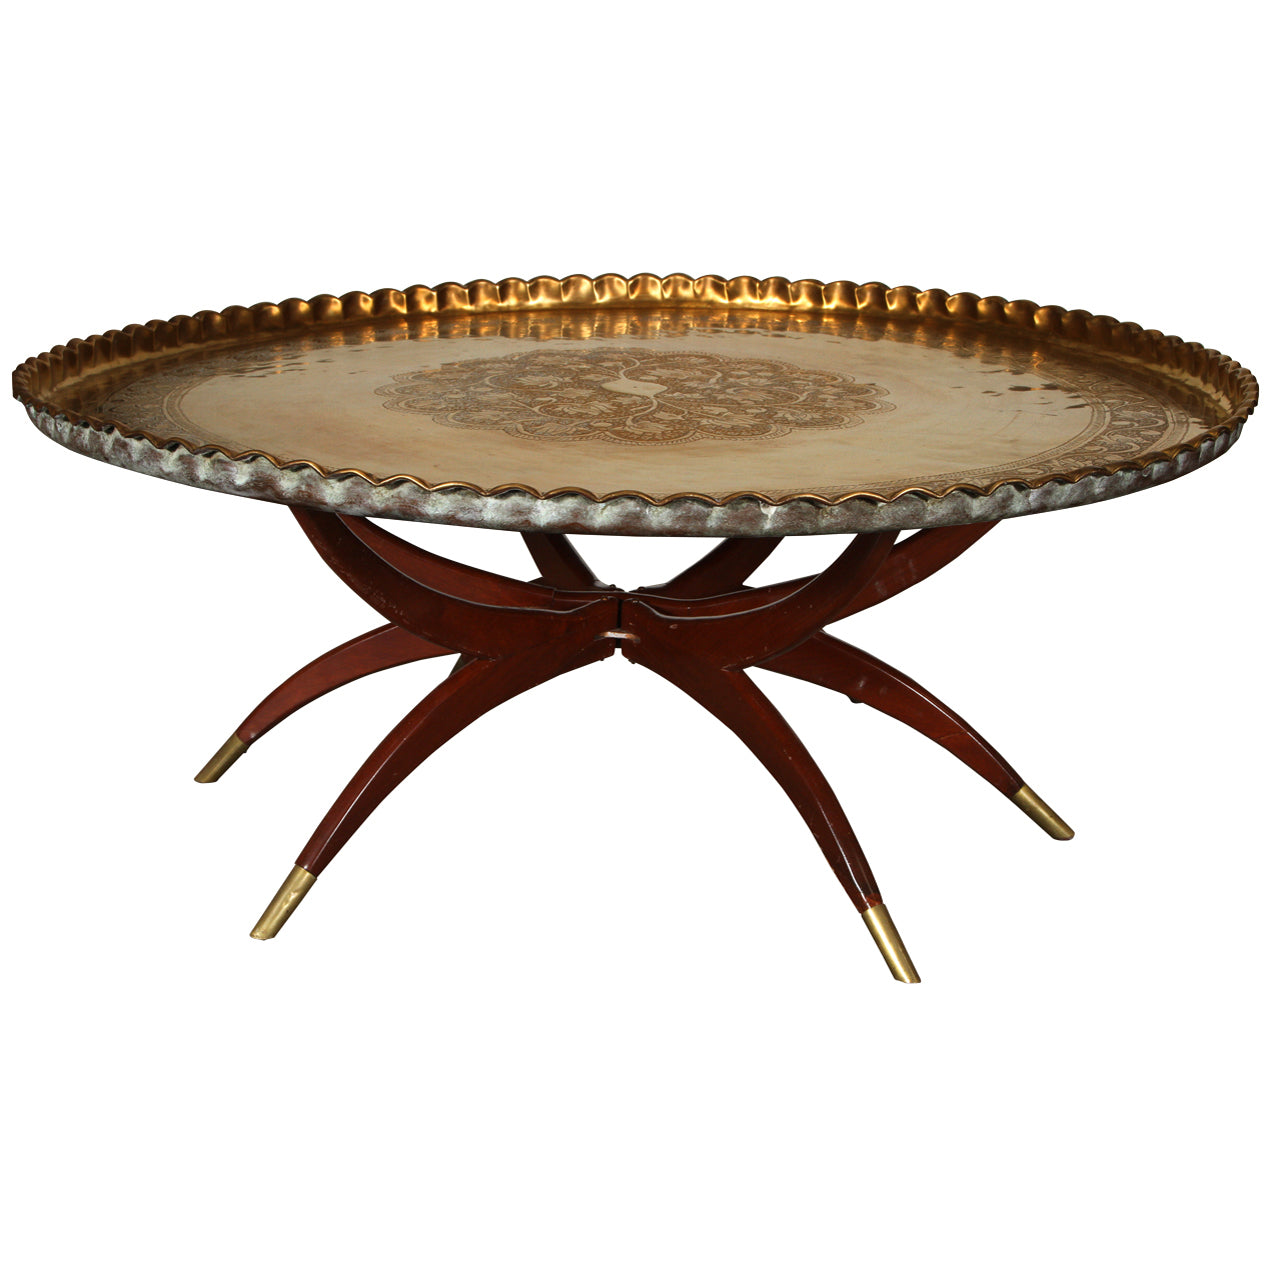 Bon Large Moroccan Round Brass Tray Table On Folding Stand 45 In.